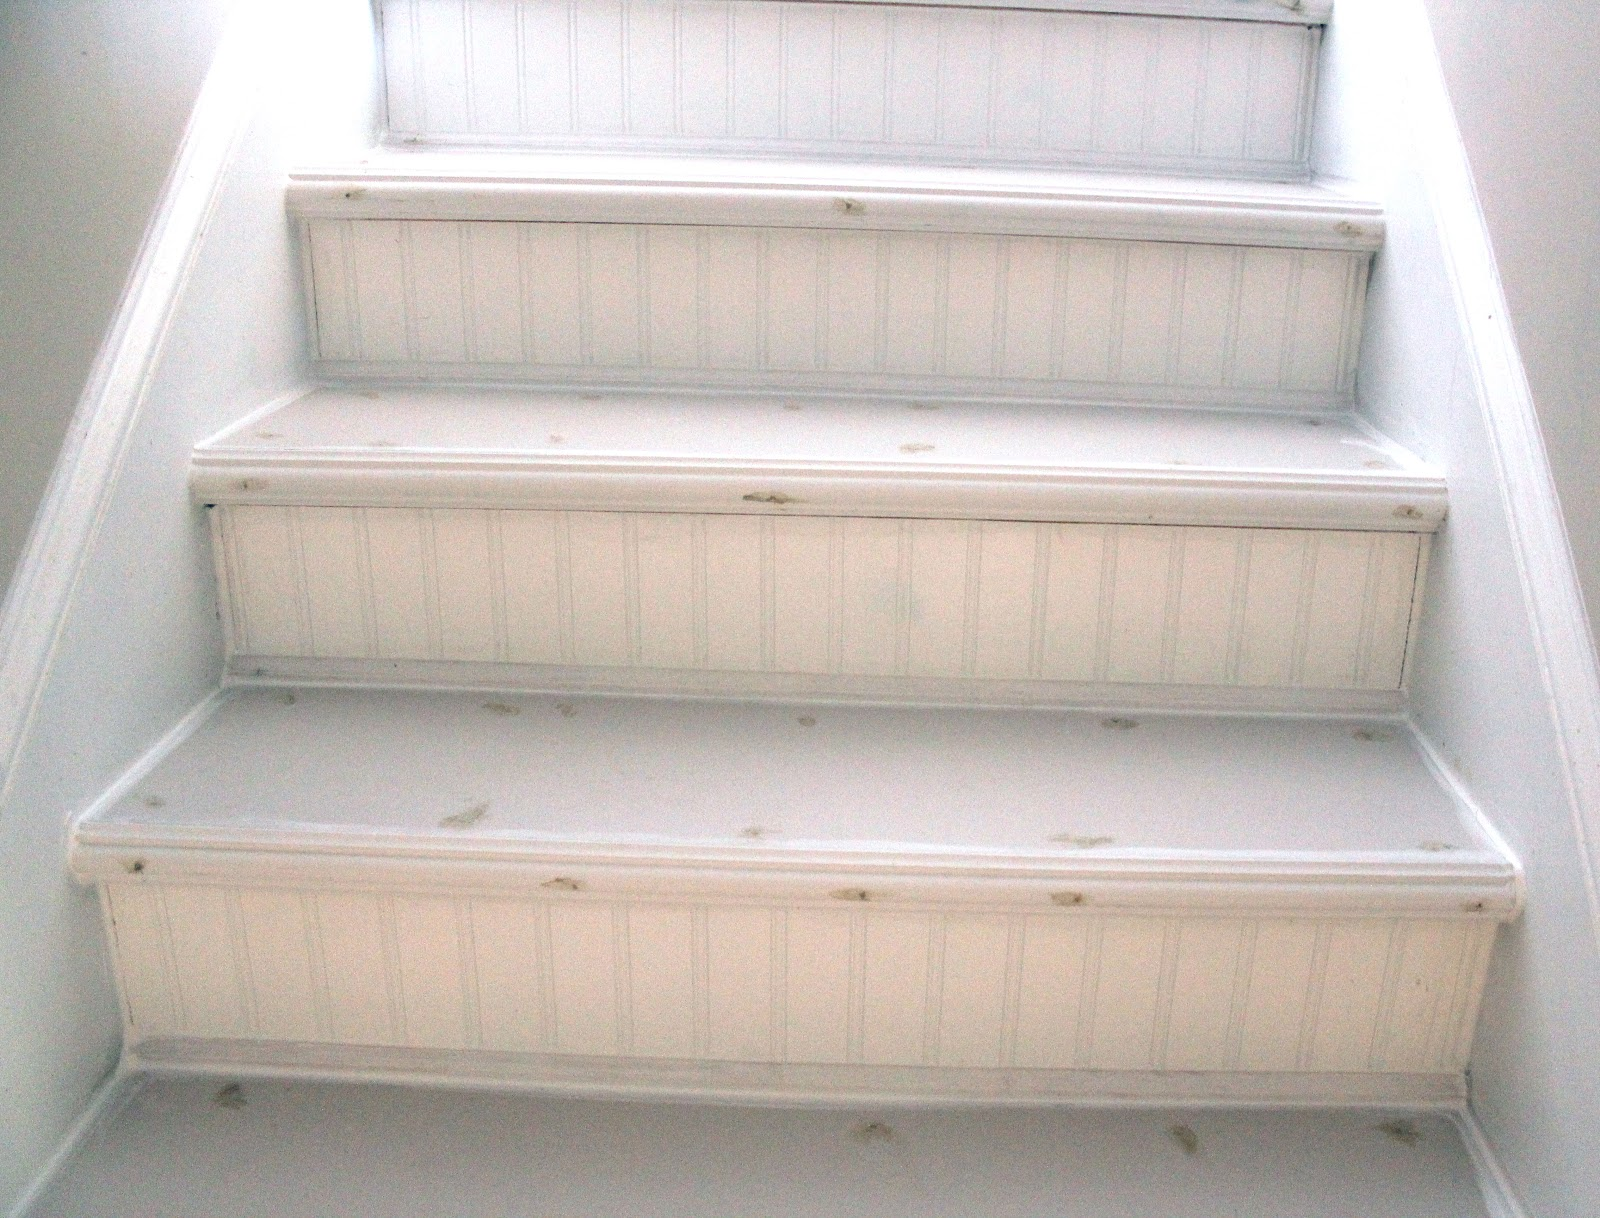 My EnRoute Life Ugly Basement Stairs Update - Finish basement stairs